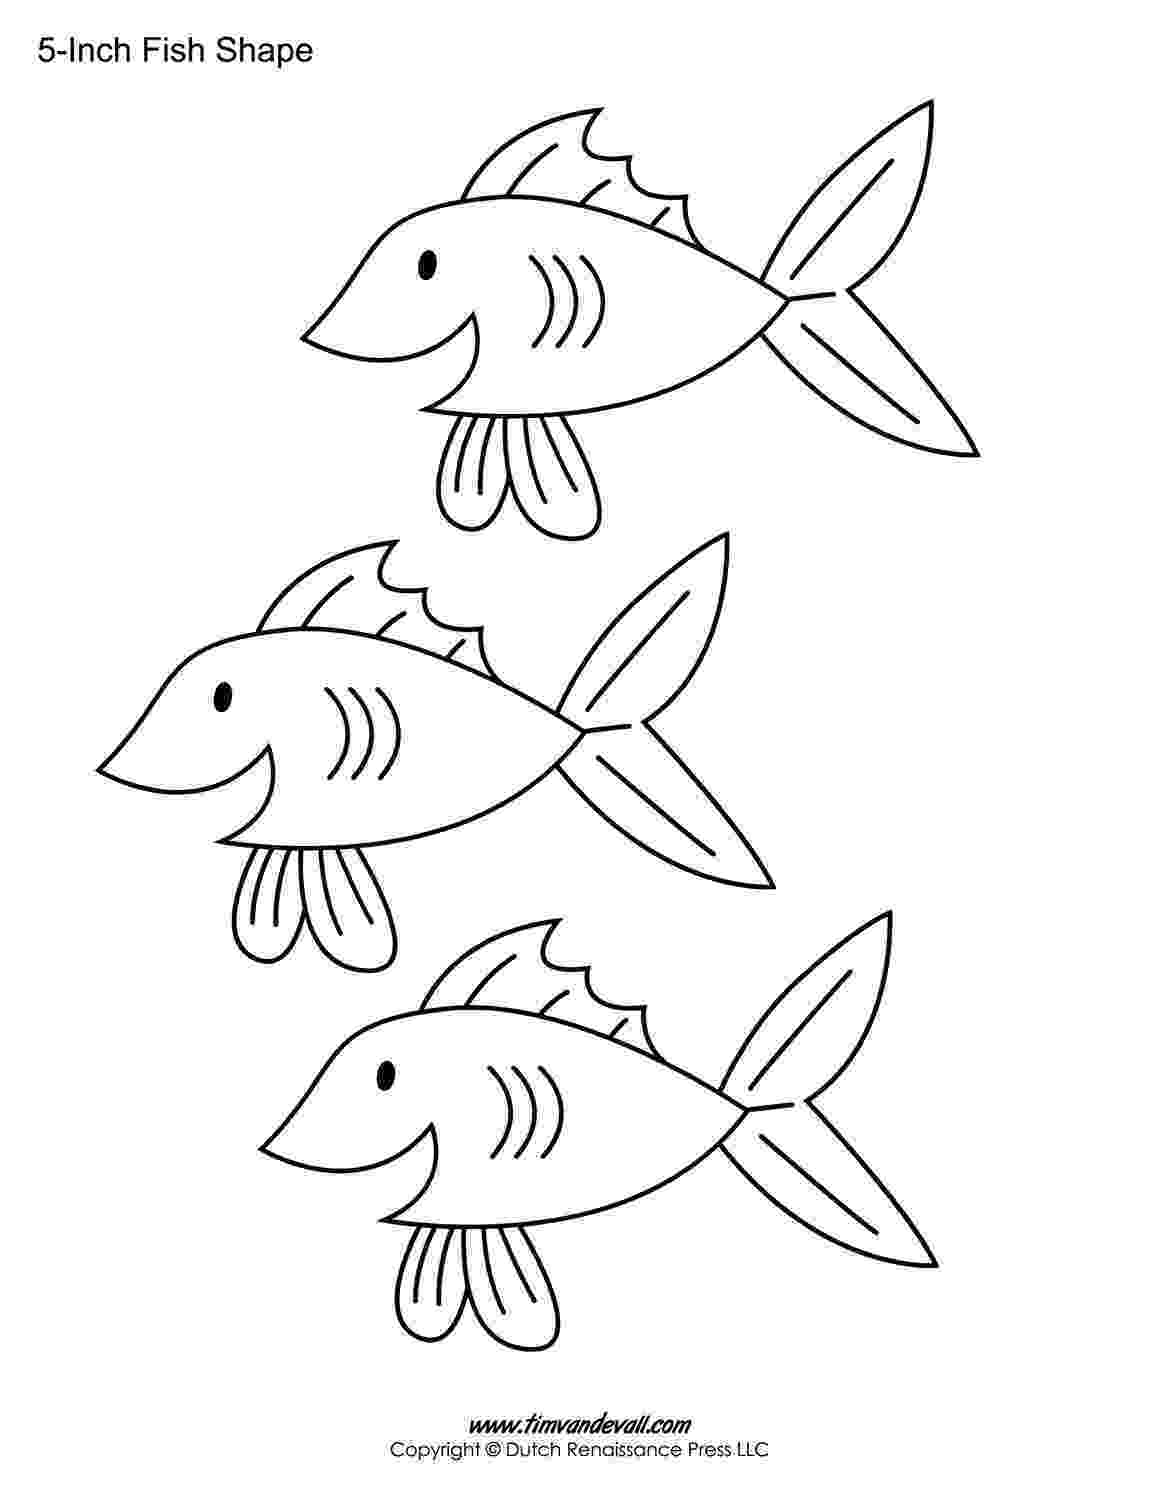 printable fish template the 25 best fish template ideas on pinterest fish cut printable fish template